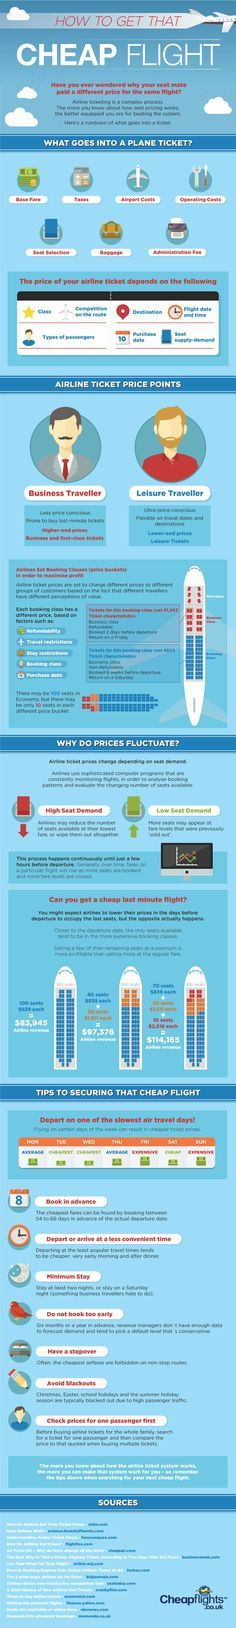 Travel Tips & Resources - How to Get That Cheap Flight infographic for cheap airfare, travel discounts and cheap plane tickets.